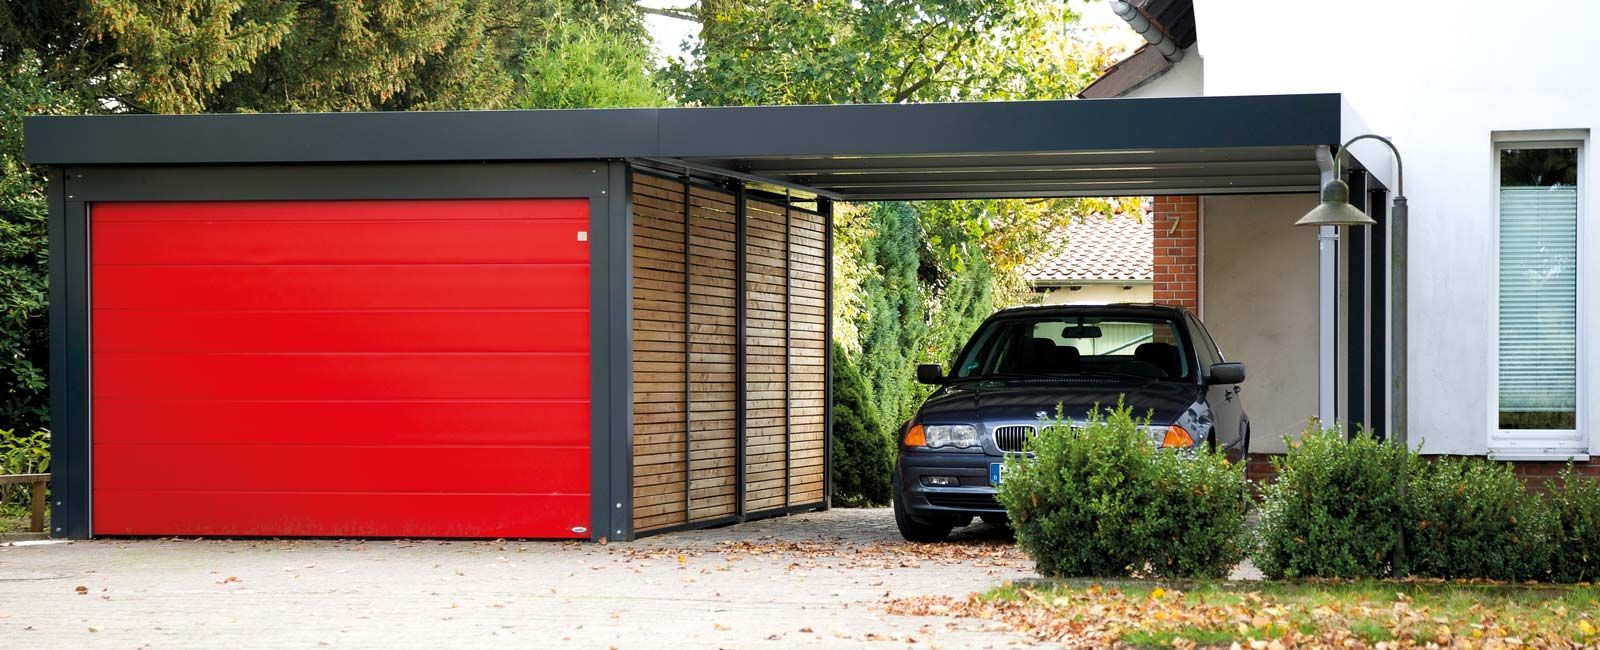 carport mit sektionaltor von siebau garage pinterest eingangs berdachung m lltonnenbox. Black Bedroom Furniture Sets. Home Design Ideas